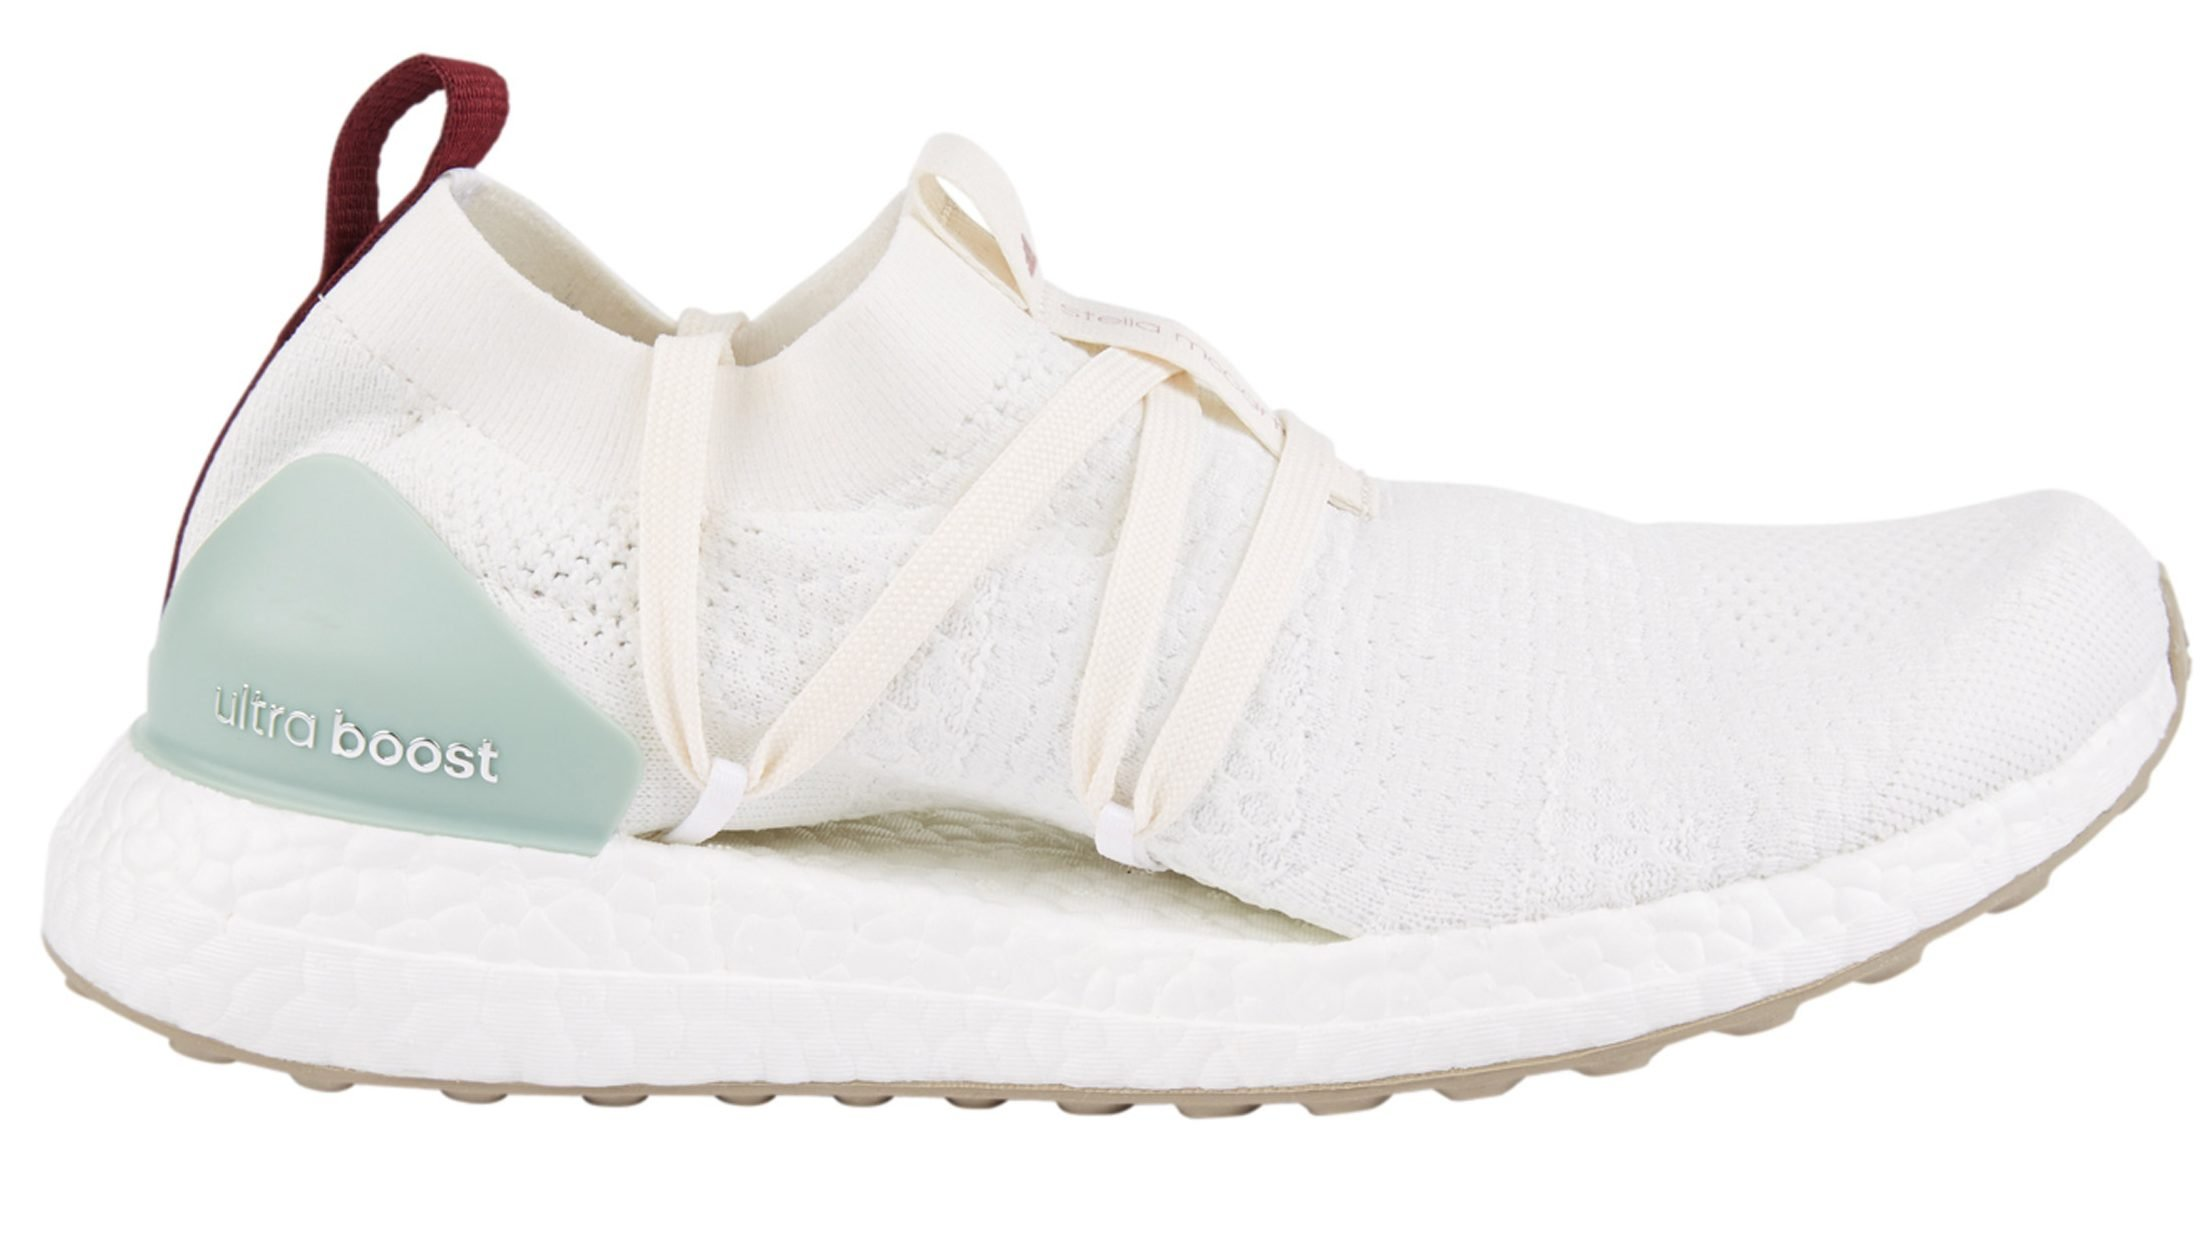 f4fa81af551 Stella McCartney and Adidas unveil Parley Ultra Boost X trainers ...